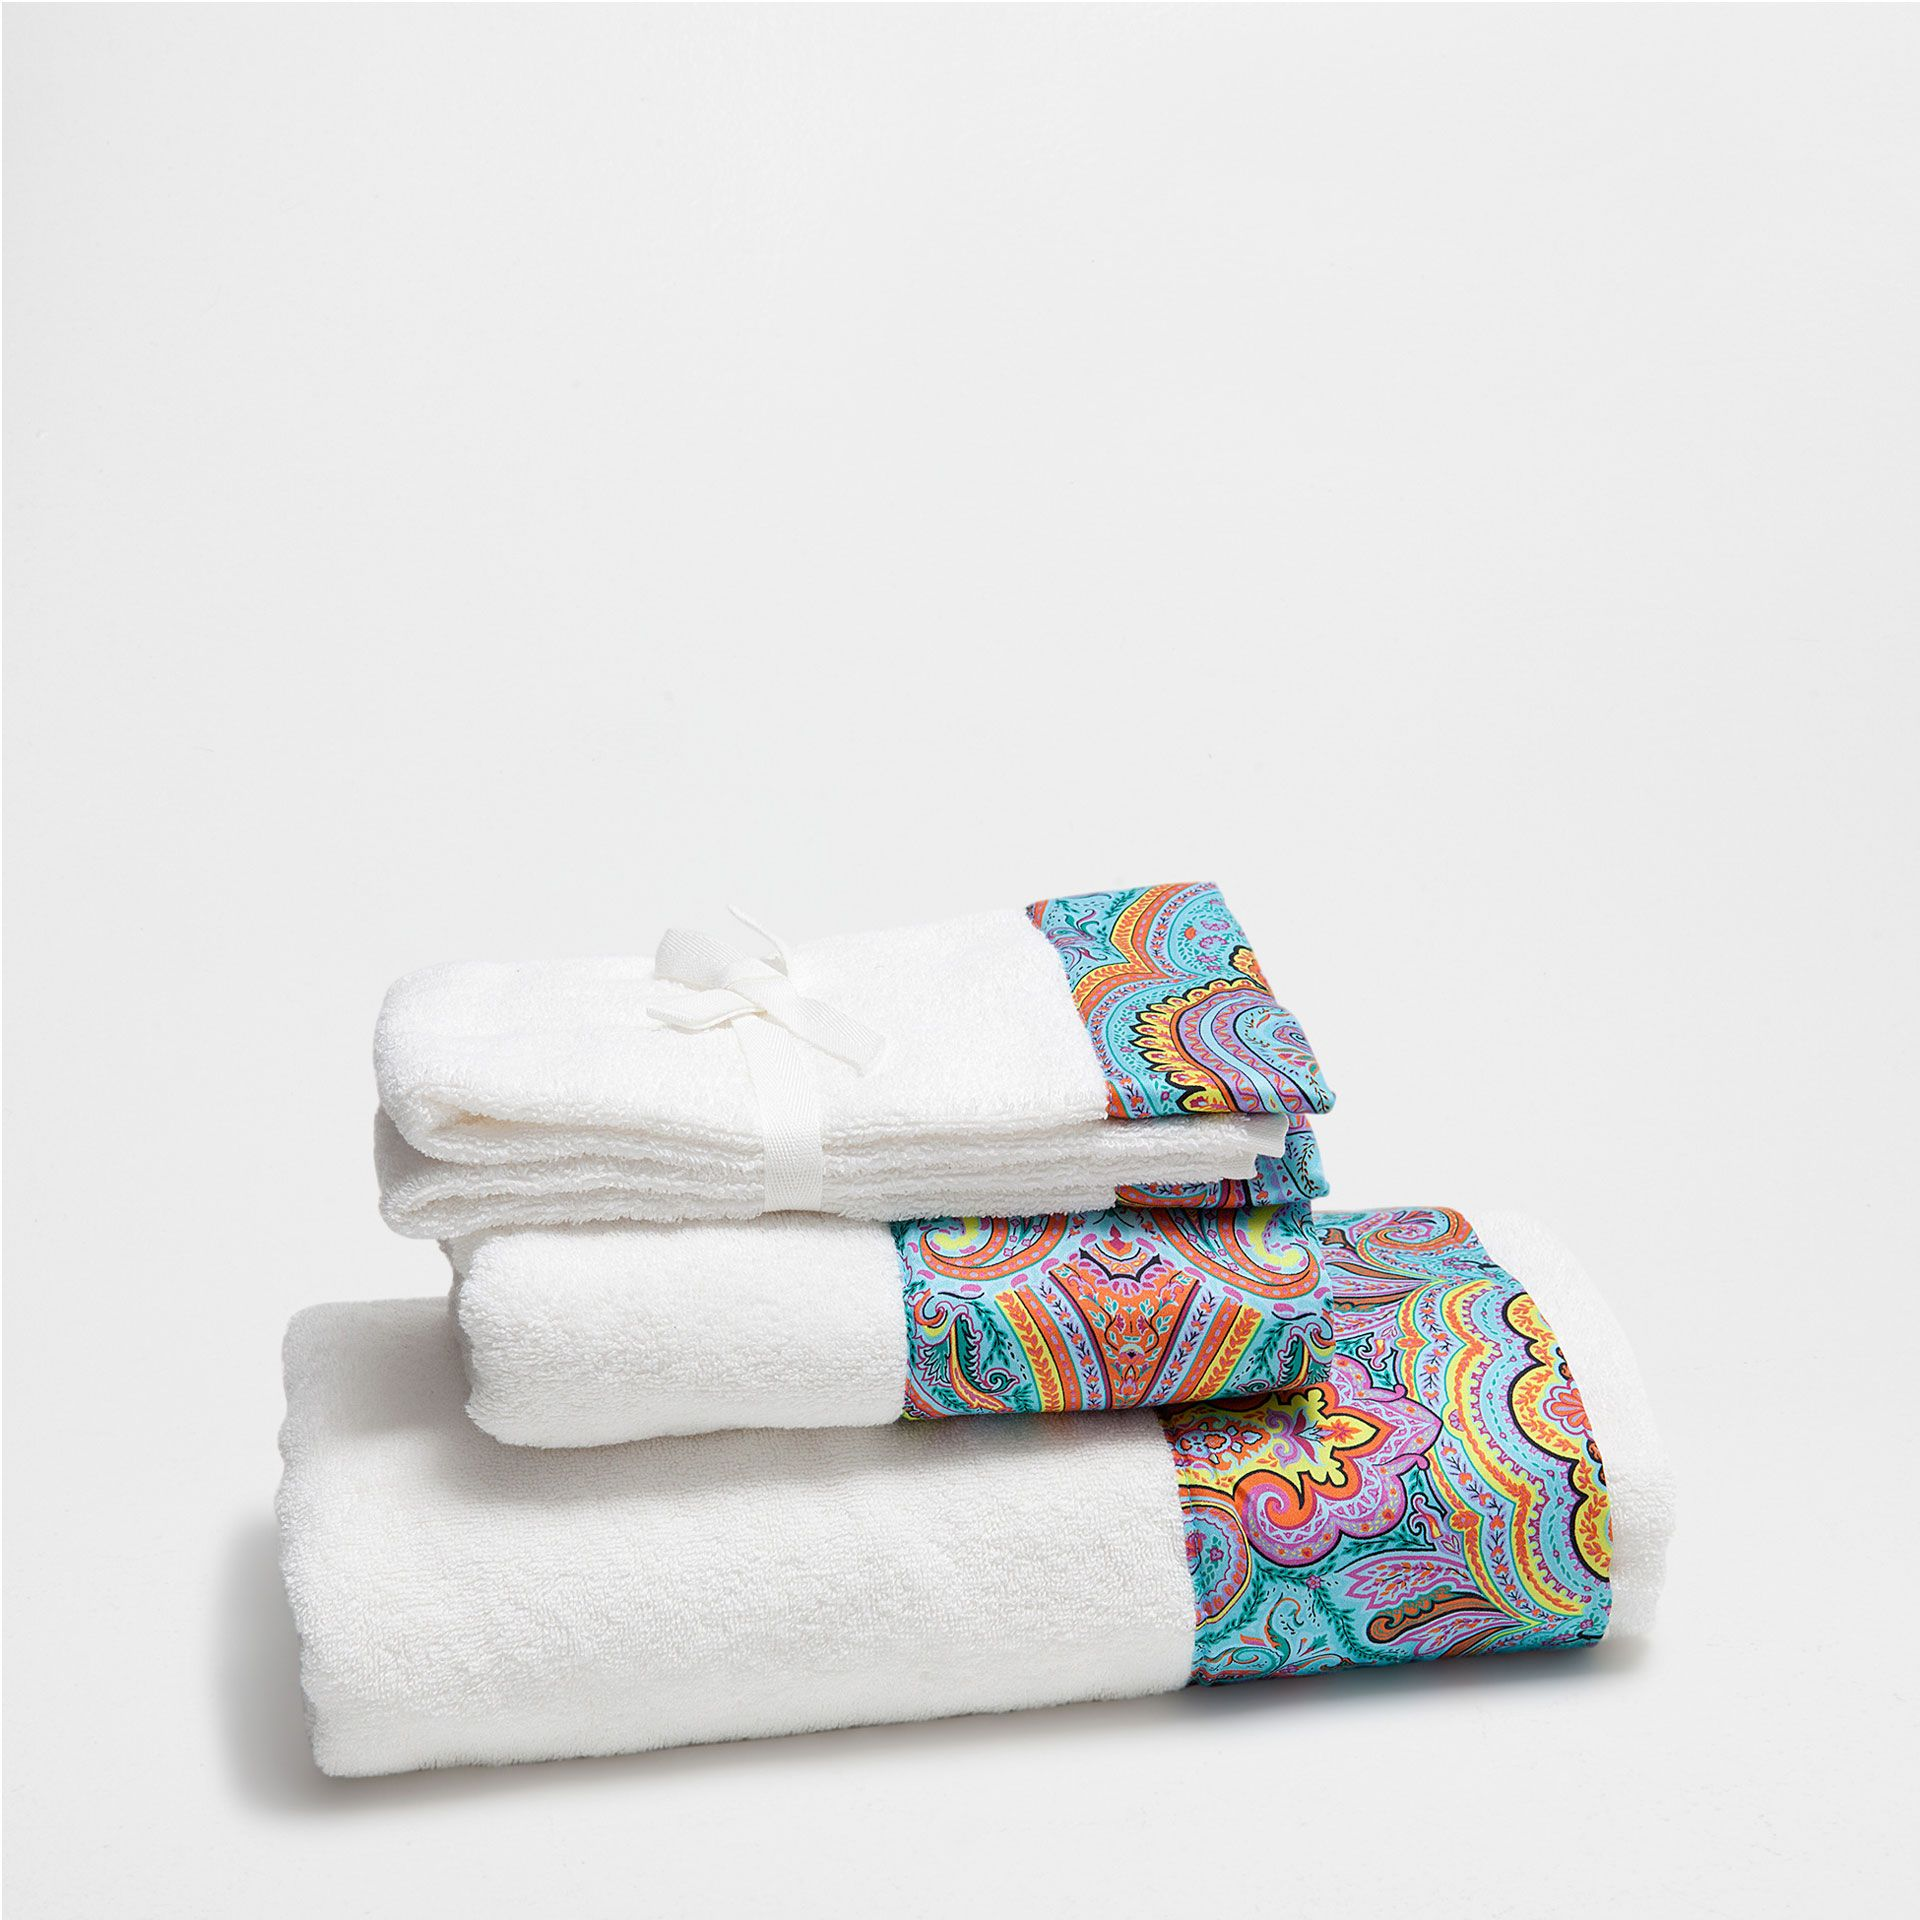 Add A Touch Of Colour For Your Bathroom With Indigo Blue Pink Floral Or Striped Hand Bath Towels From The Zara Home Catalogue